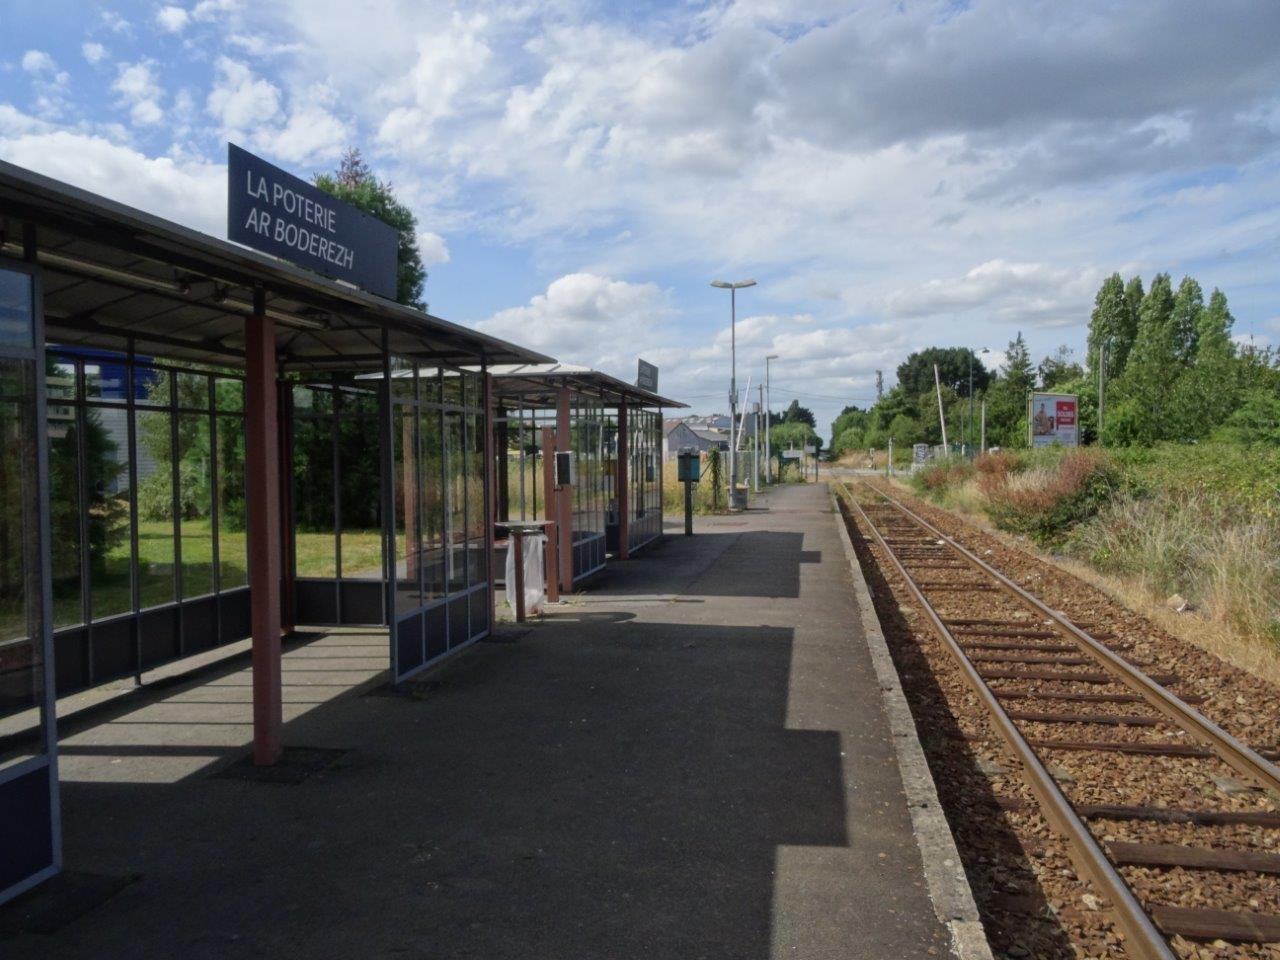 gare-de-rennes-la-poterie-train-station